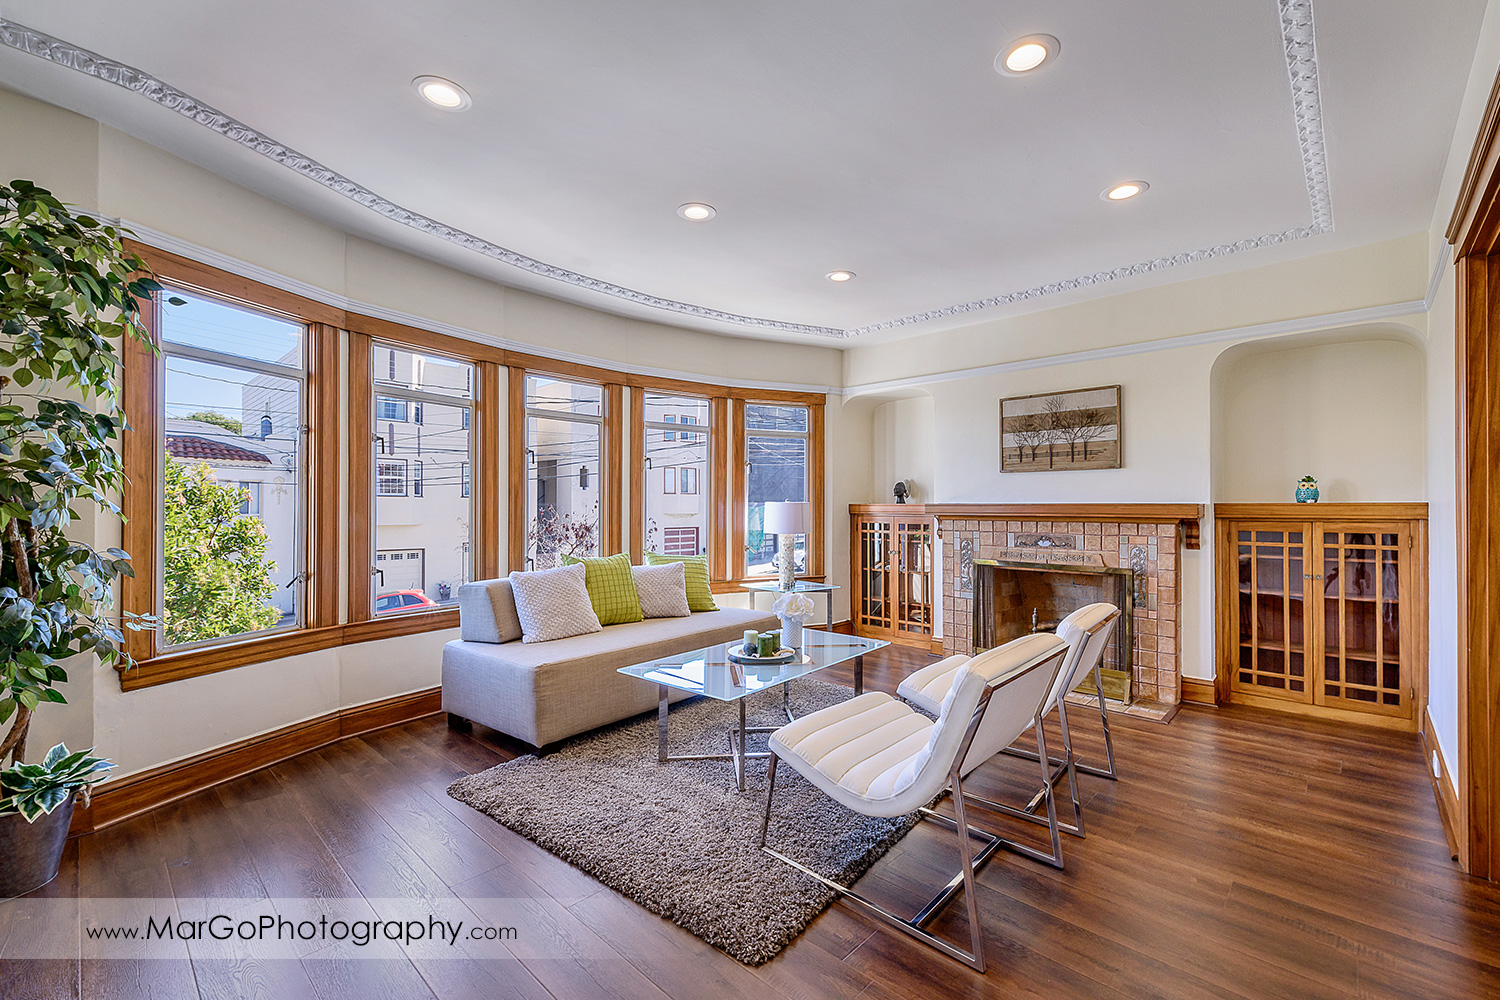 San Francisco house living room with panoramic windows and fireplace - real estate photography